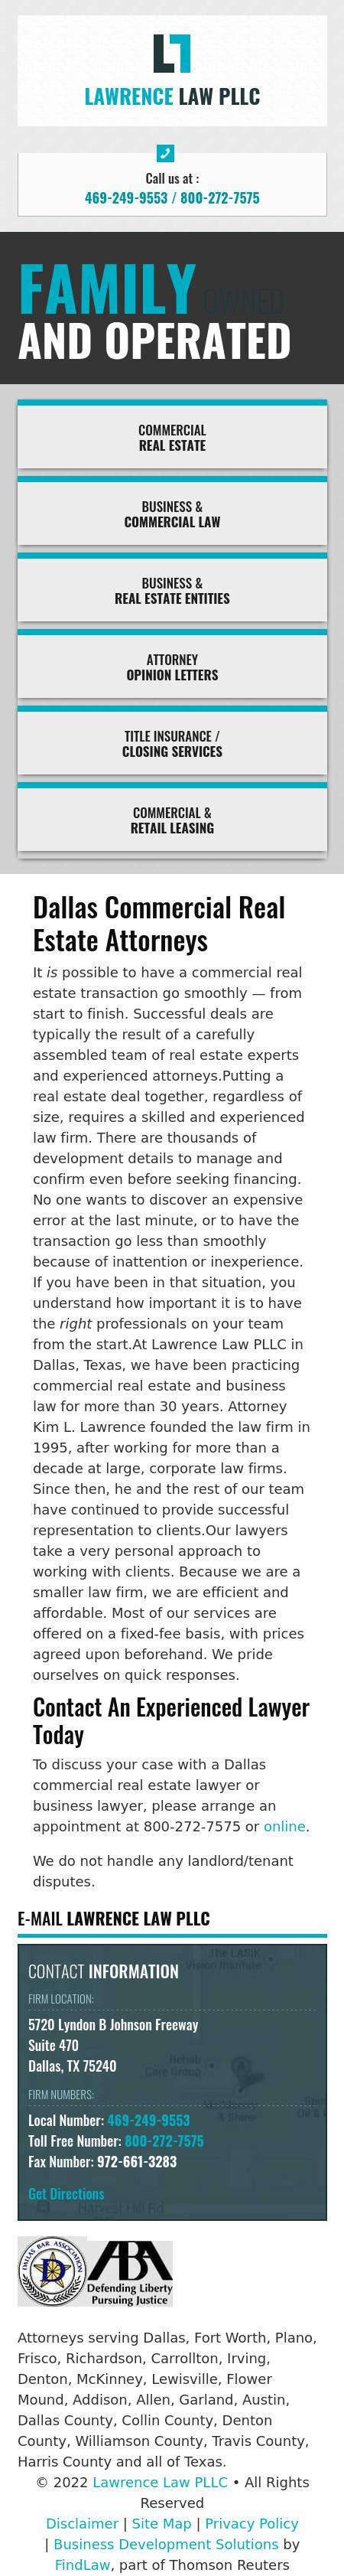 Lawrence Law PLLC - Dallas TX Lawyers